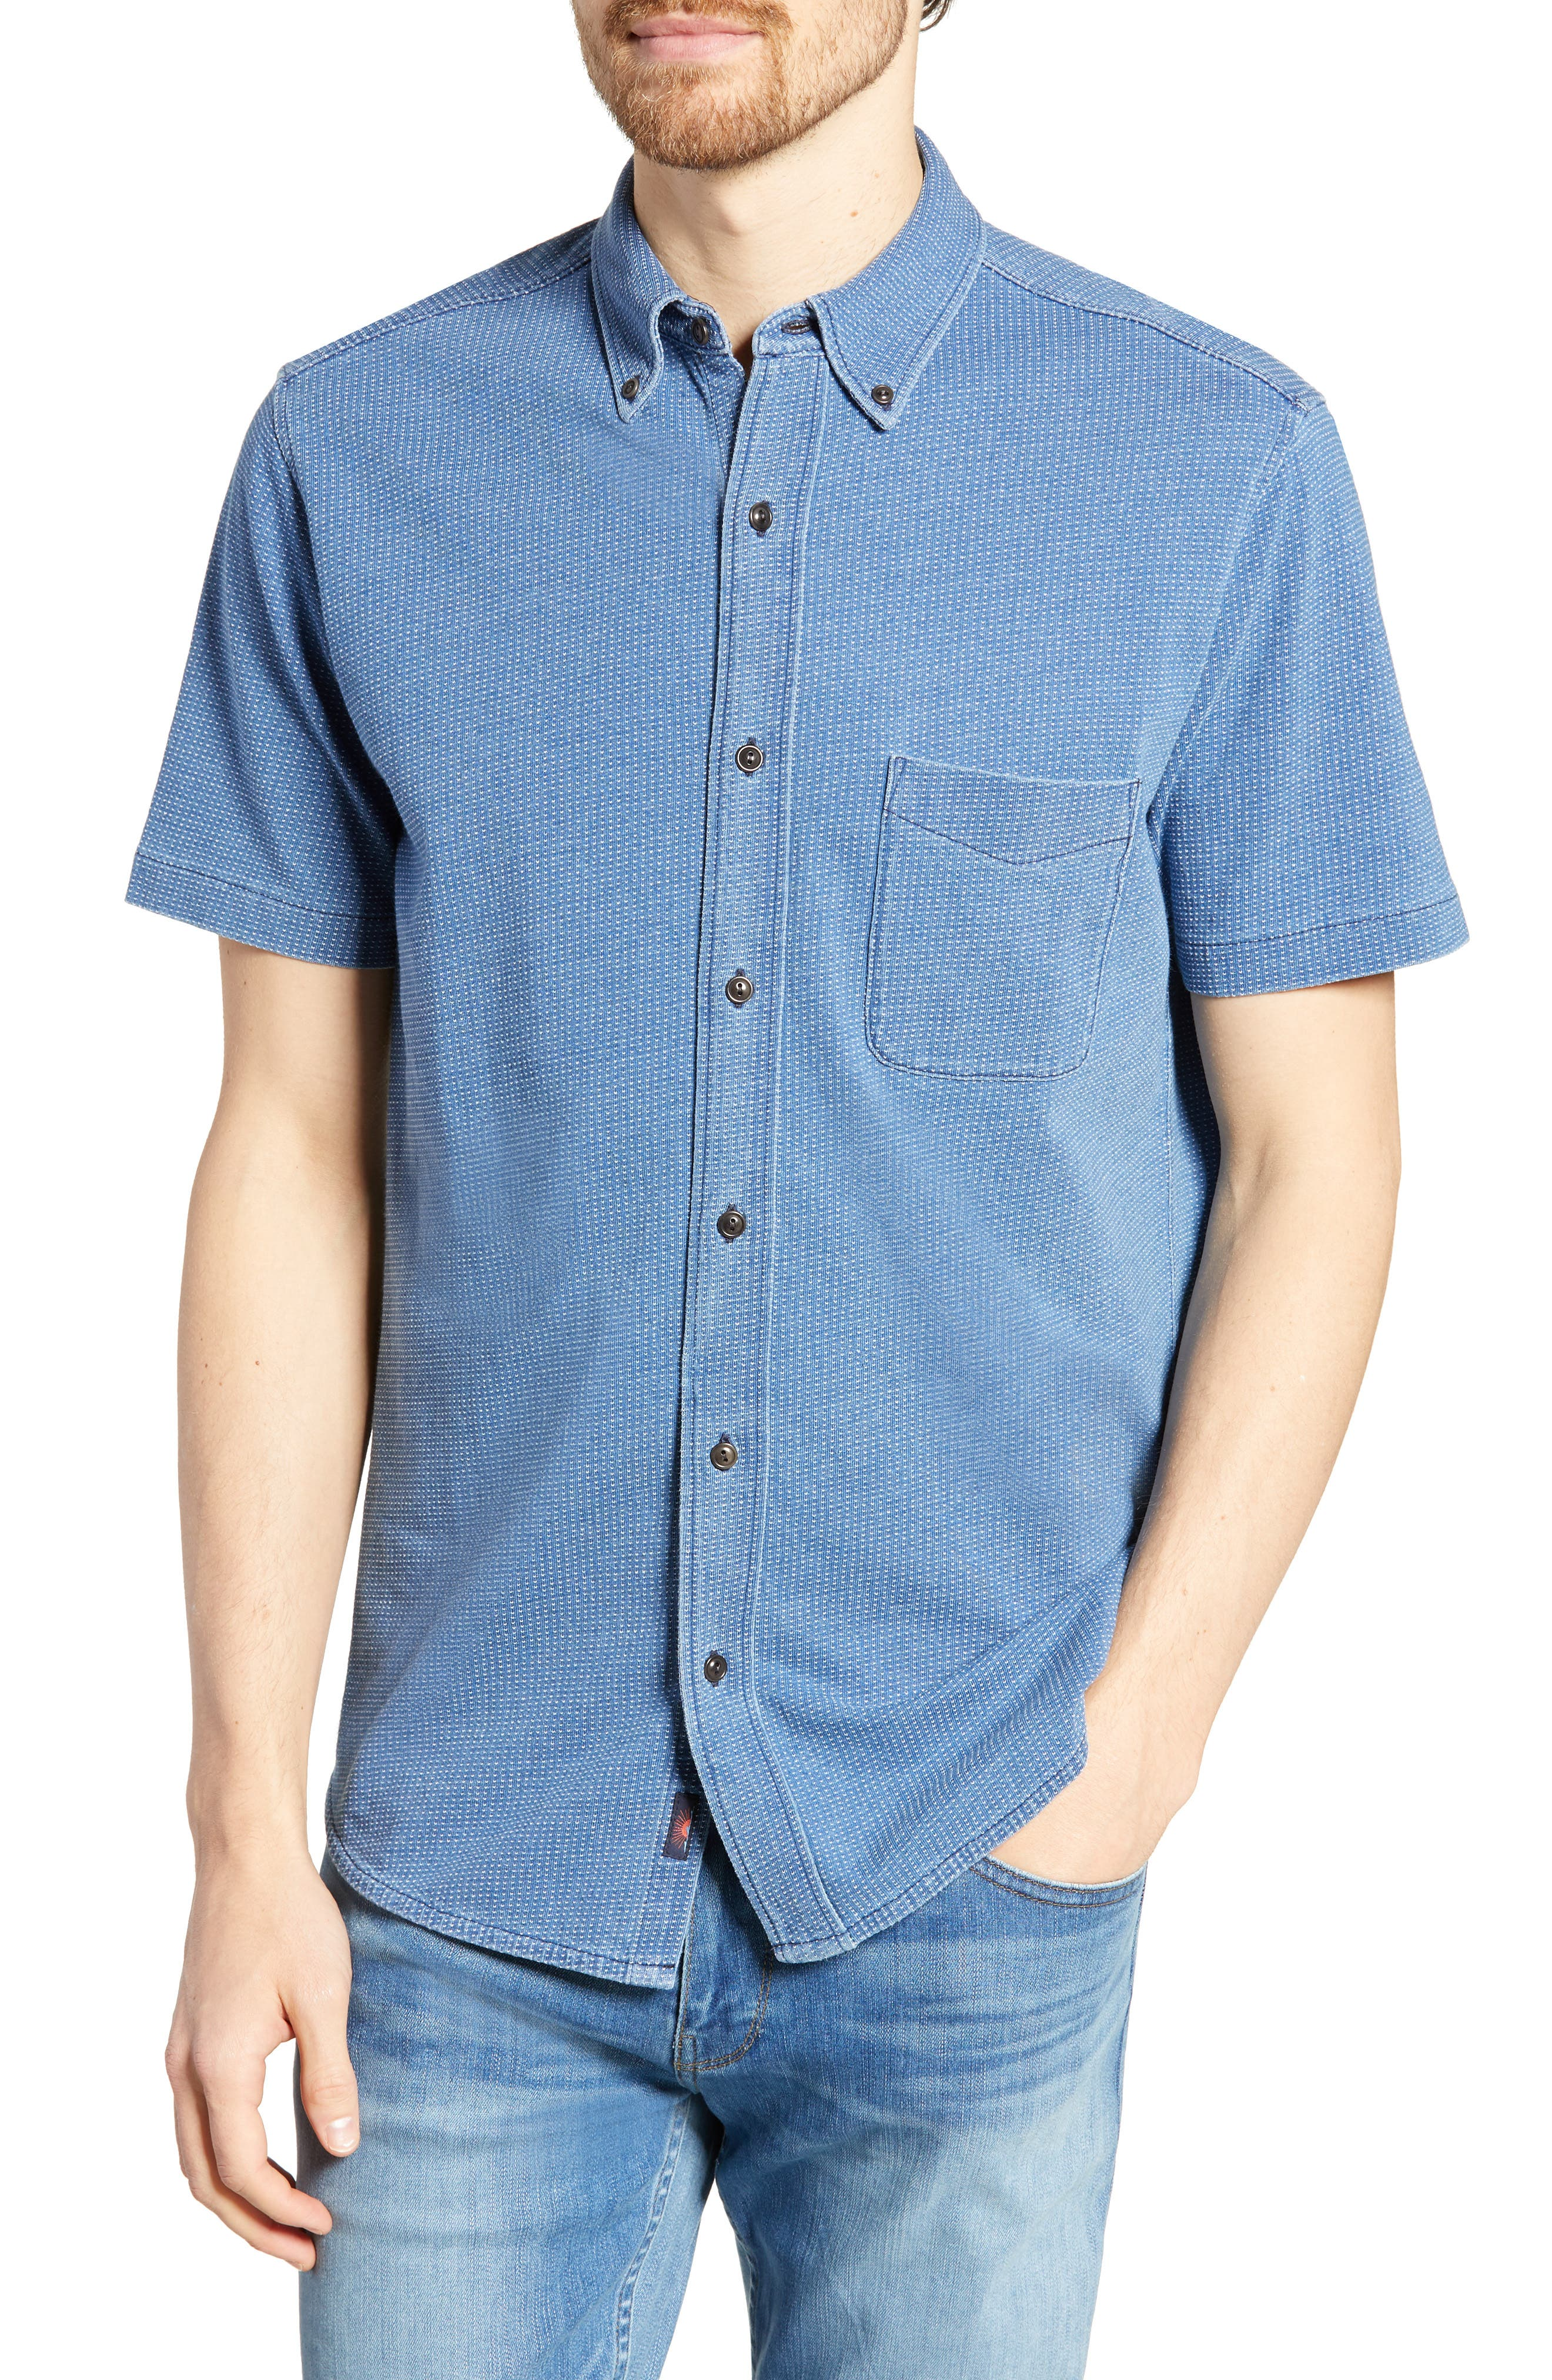 Faherty Pacific Regular Fit Sport Shirt, Blue